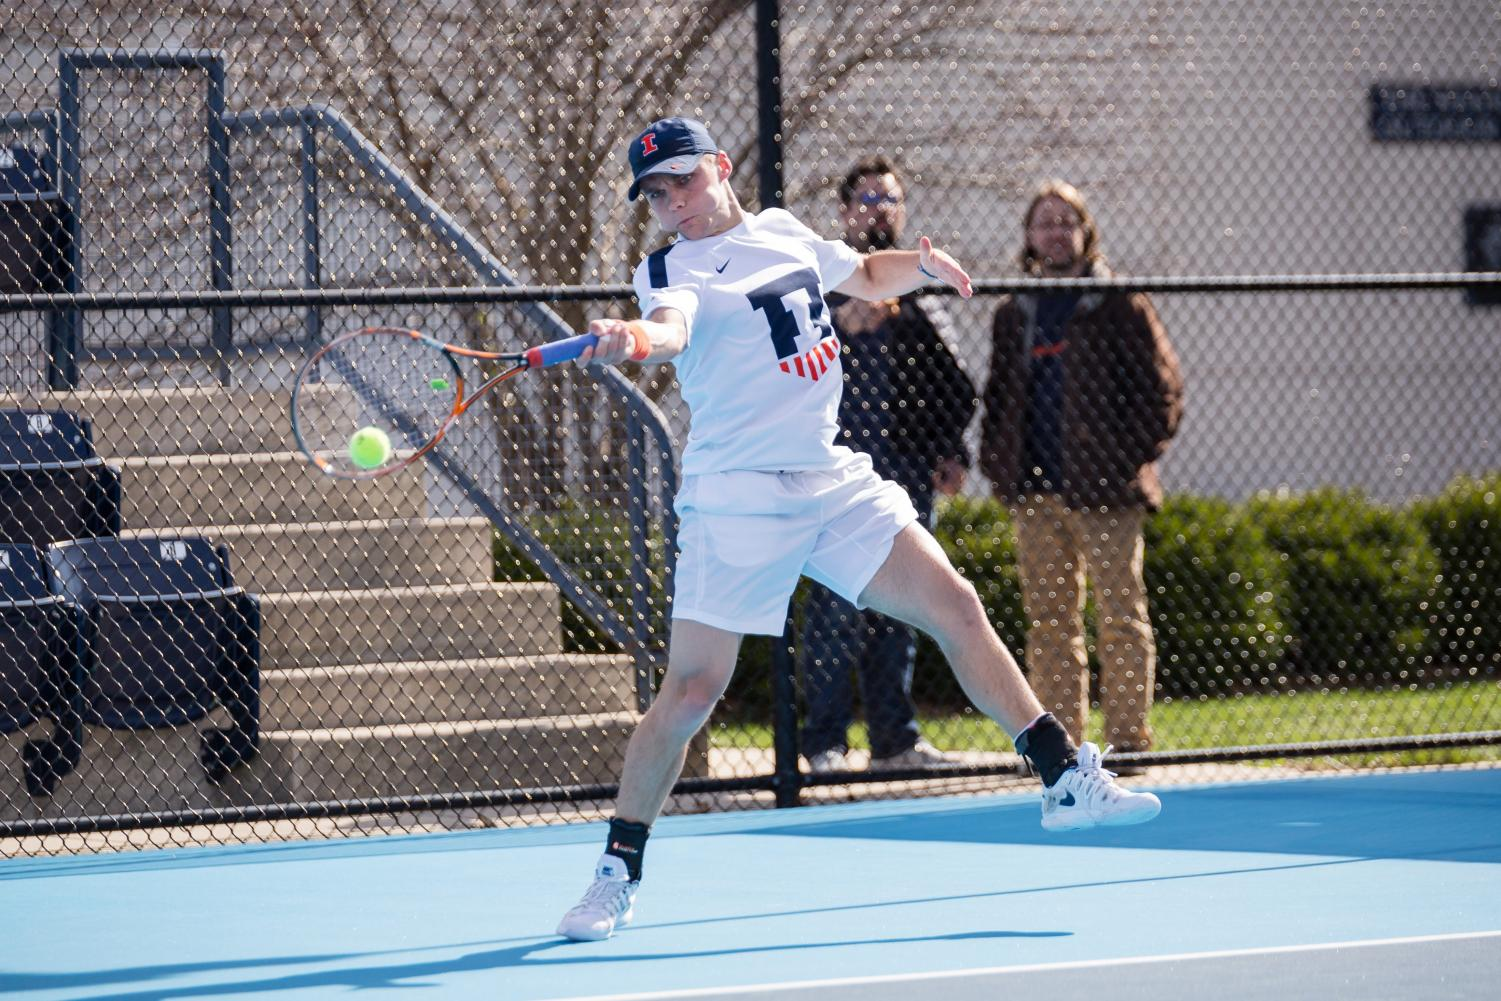 Junior Zeke Clark serves the ball during a match. The men's tennis team boasts several powerful duos in fast-paced doubles matches, leaving plenty to look out for this season.